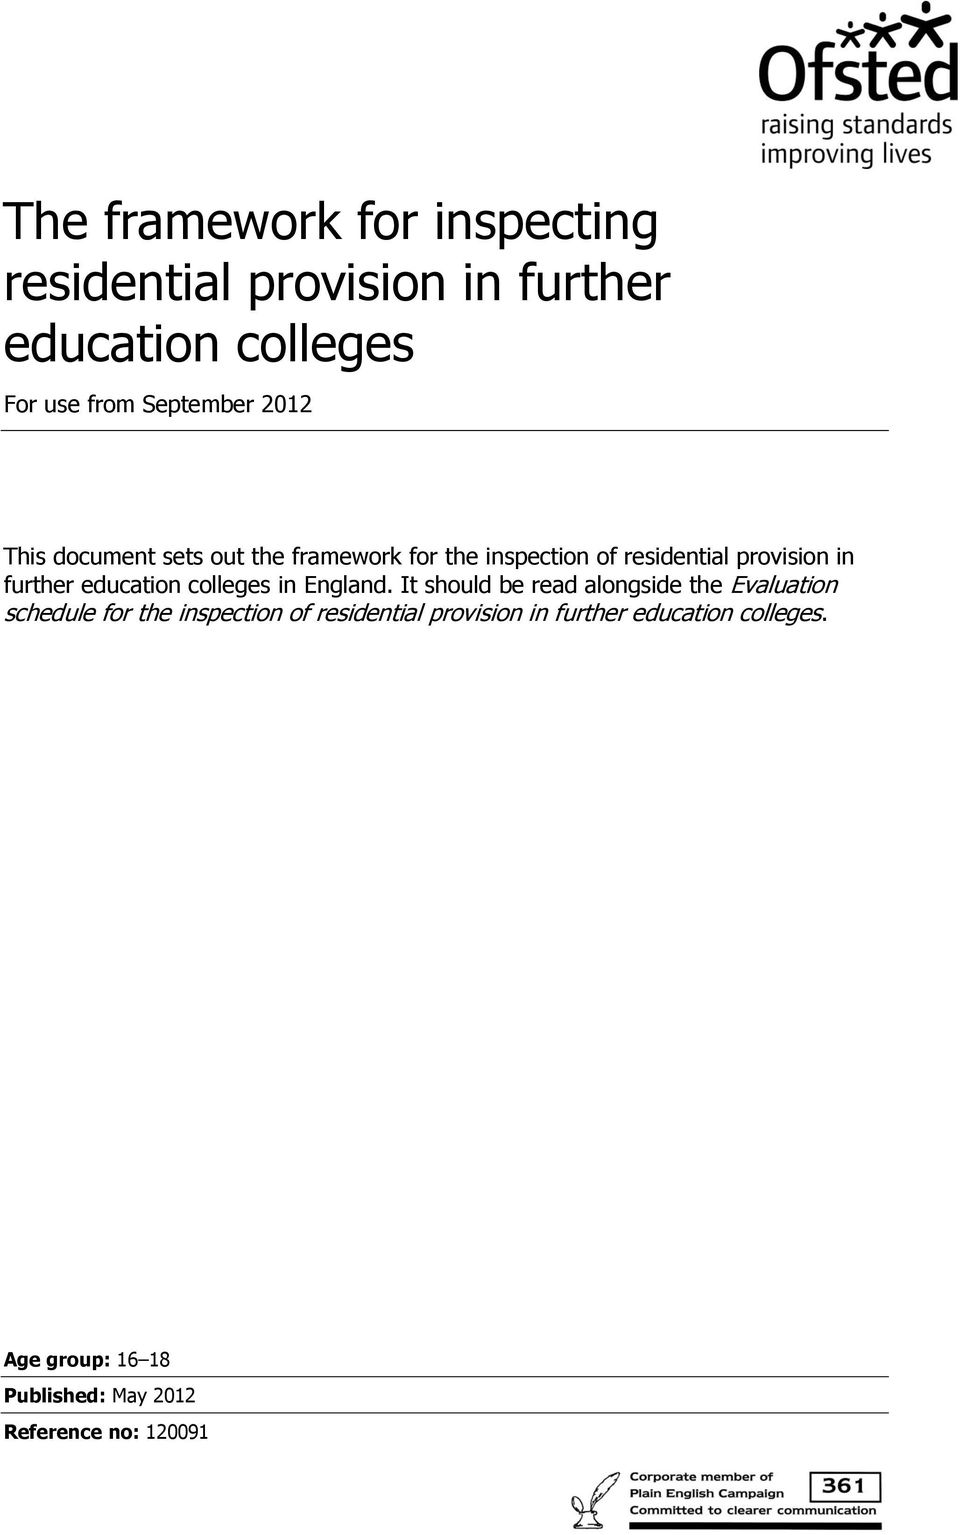 education colleges in England.